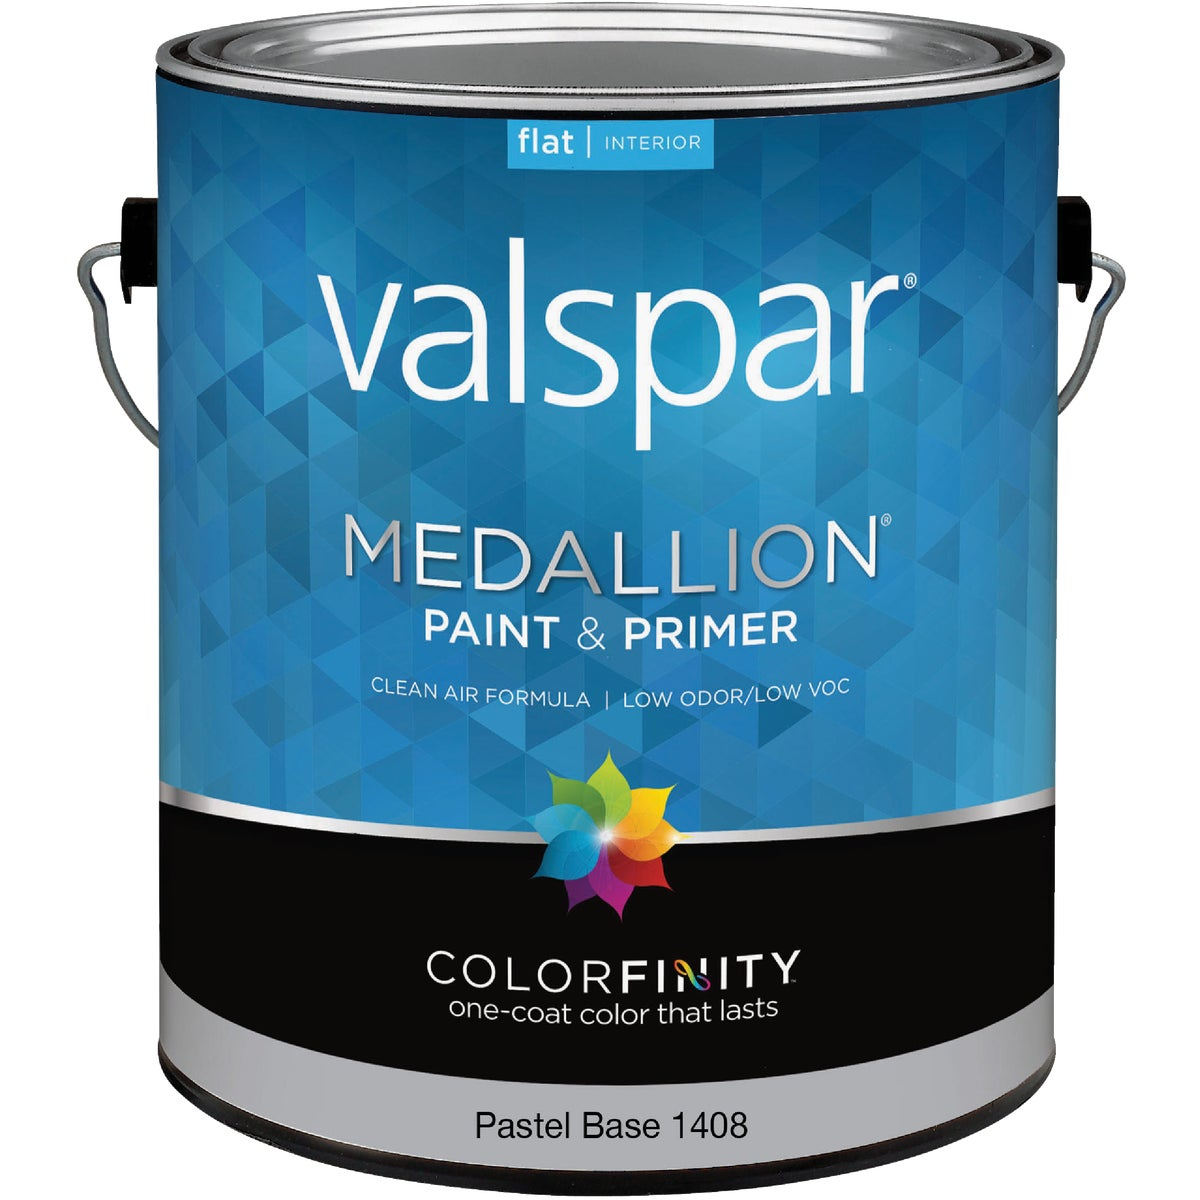 INT FLAT PASTEL BS PAINT - 027.0001408.007 by Valspar Corp